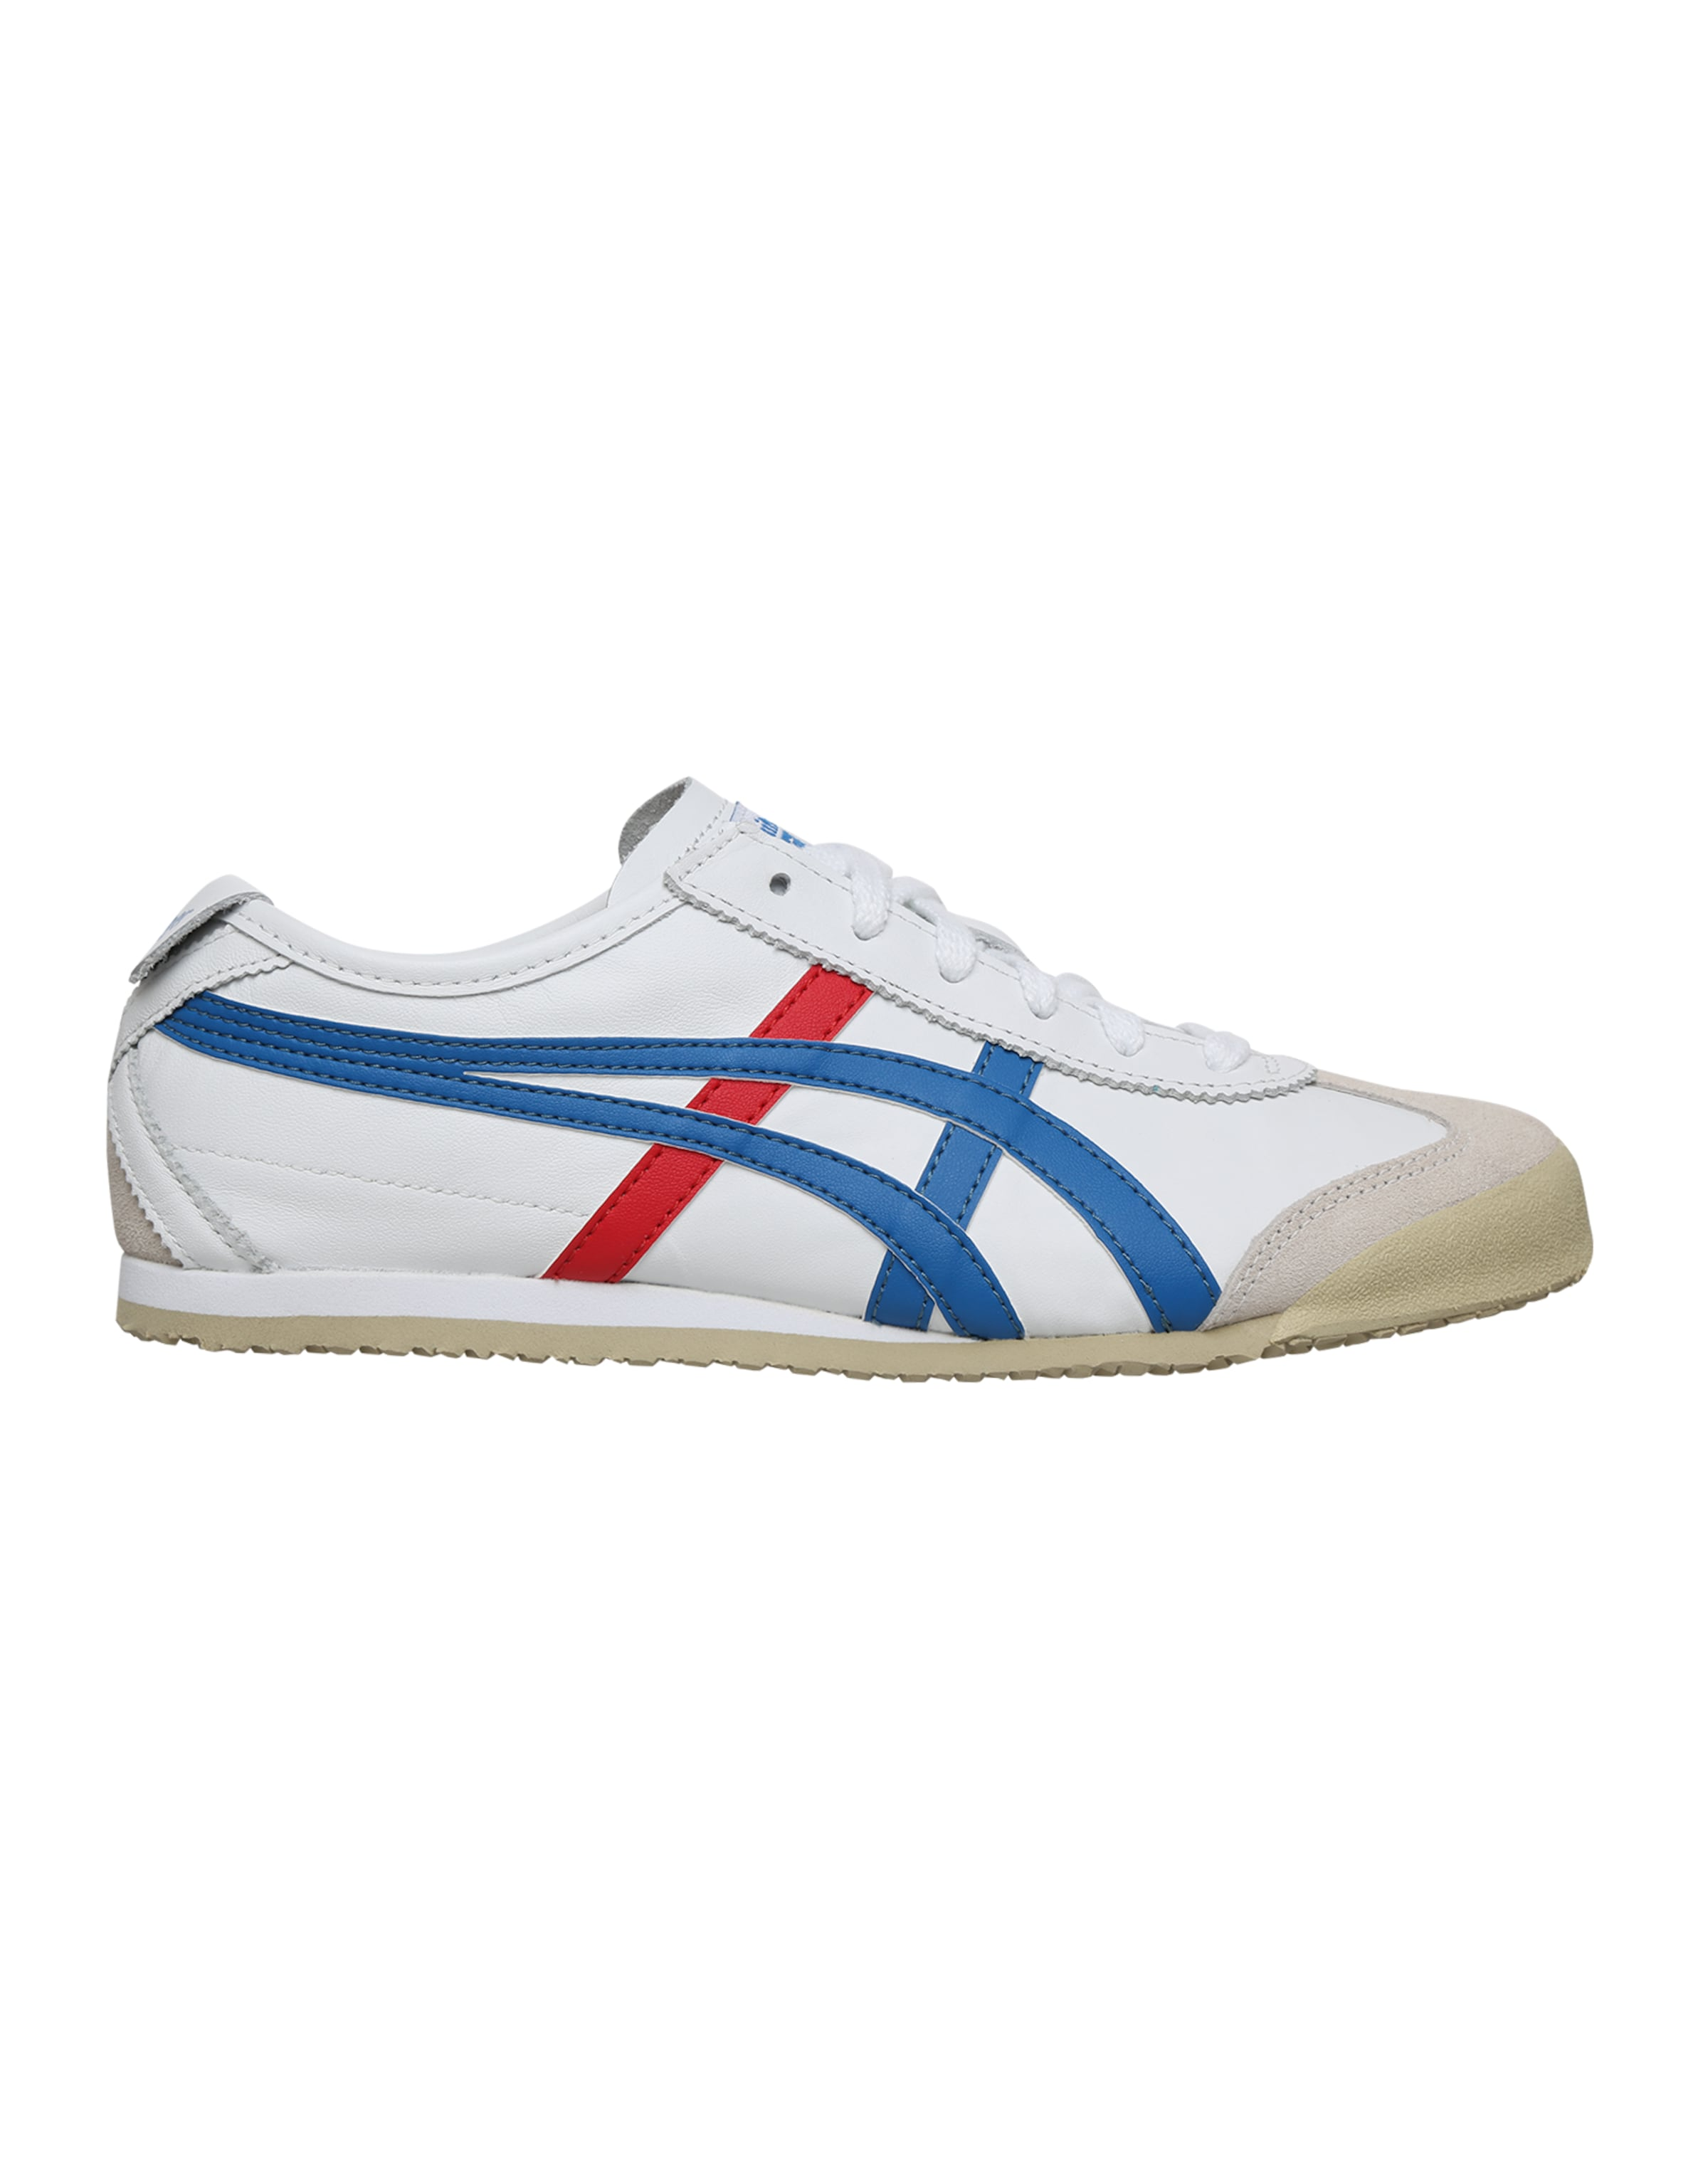 Weiß Sneaker Onitsuka In 'mexico 66' BlauRot Low Tiger FT3l1KcJ